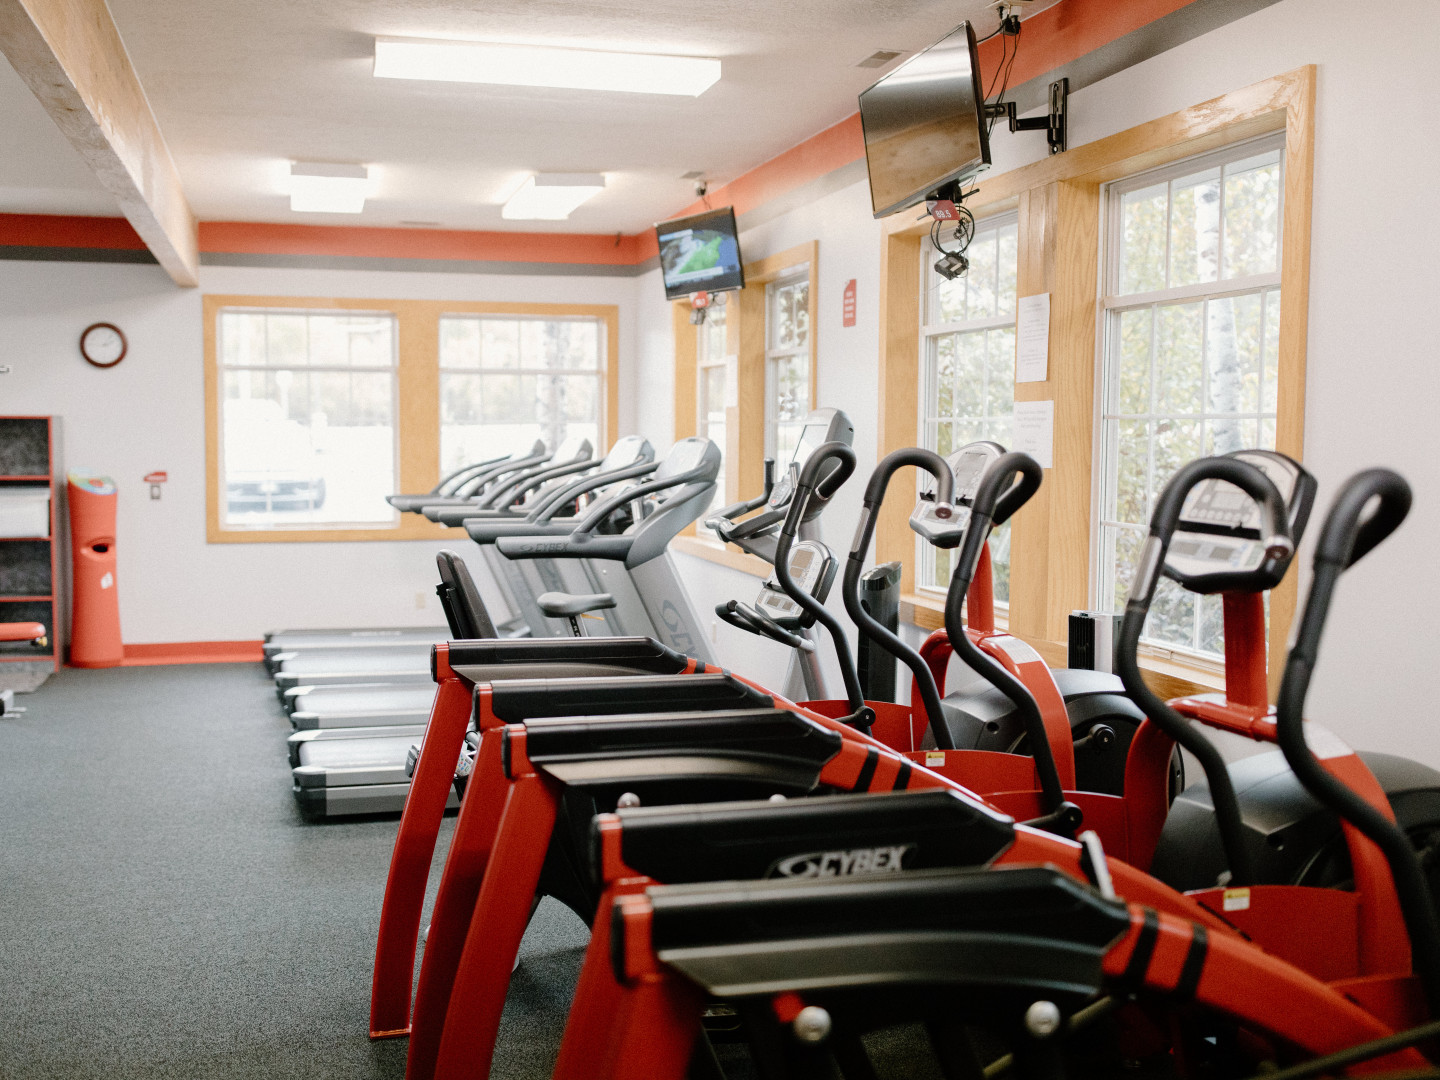 Jump On the Treadmills and Ellipticals for a Great Workout